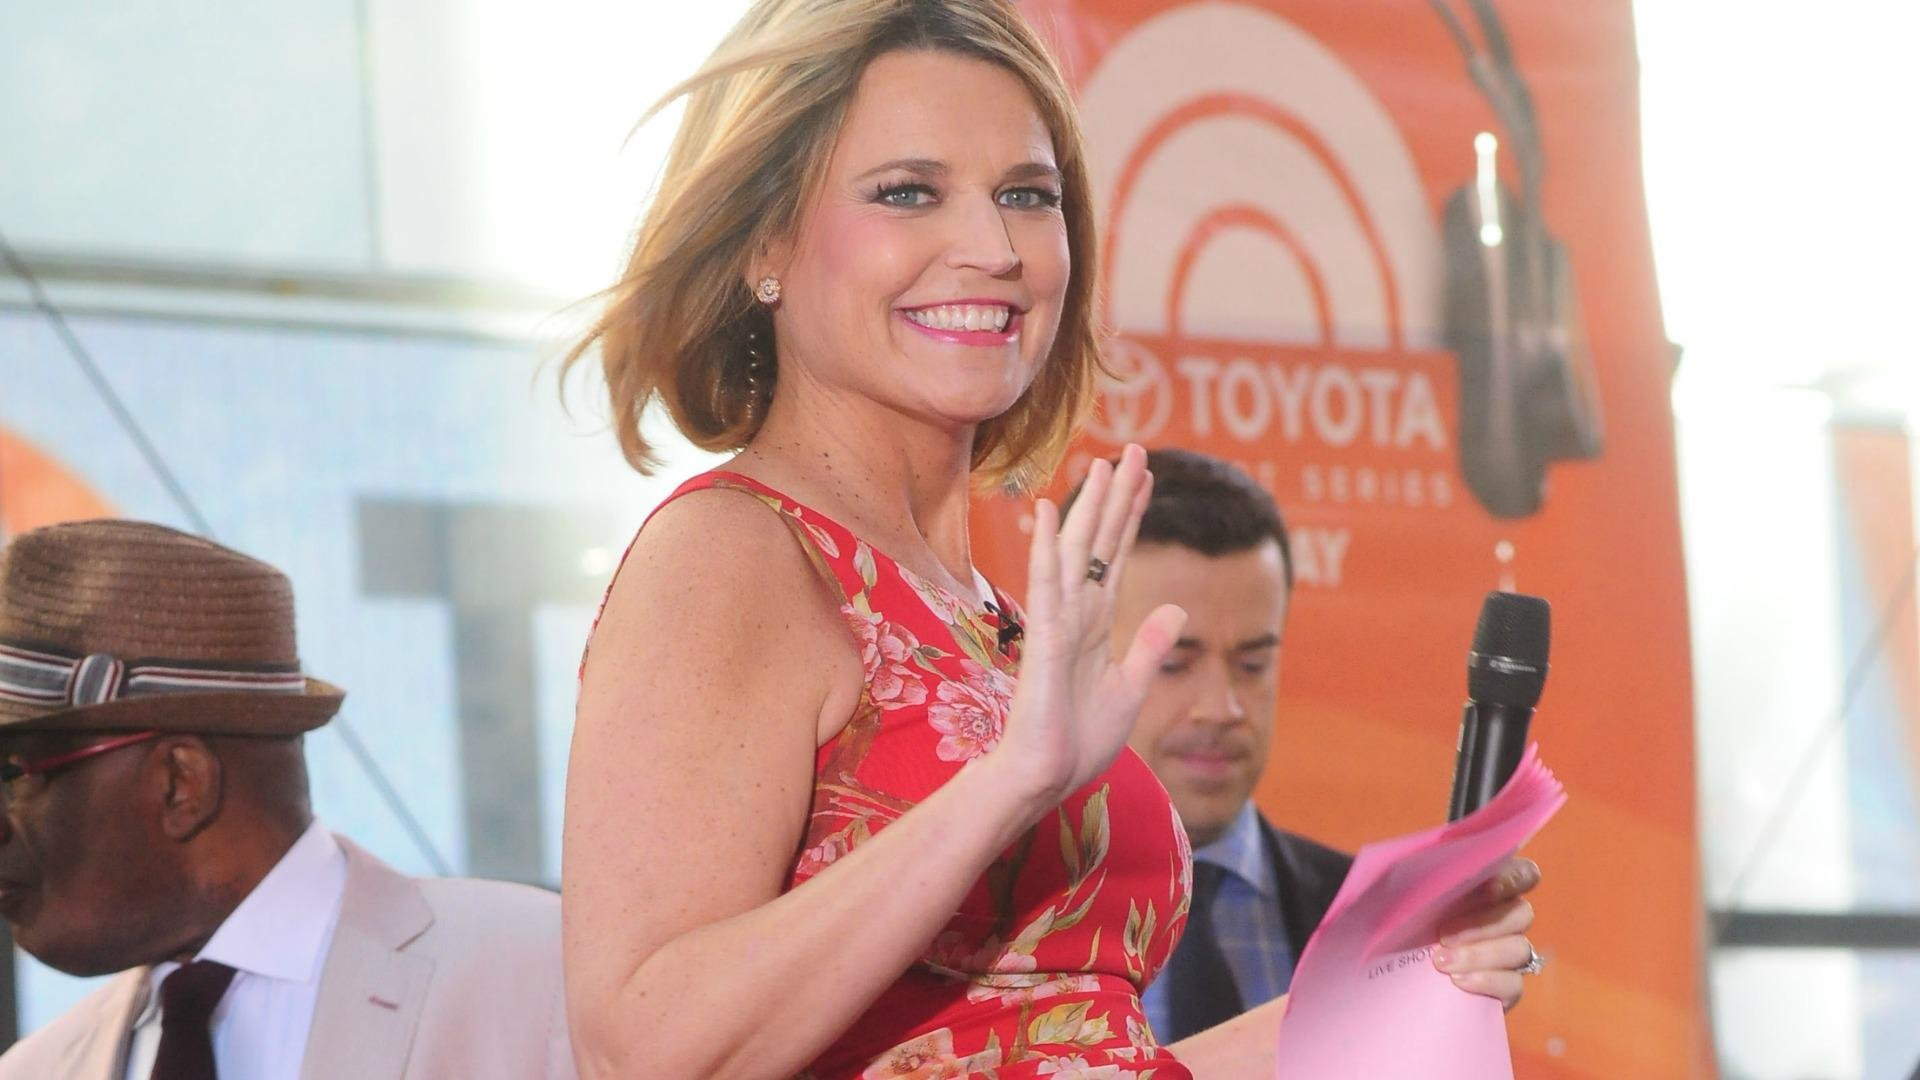 Savannah Guthrie Wedding Date